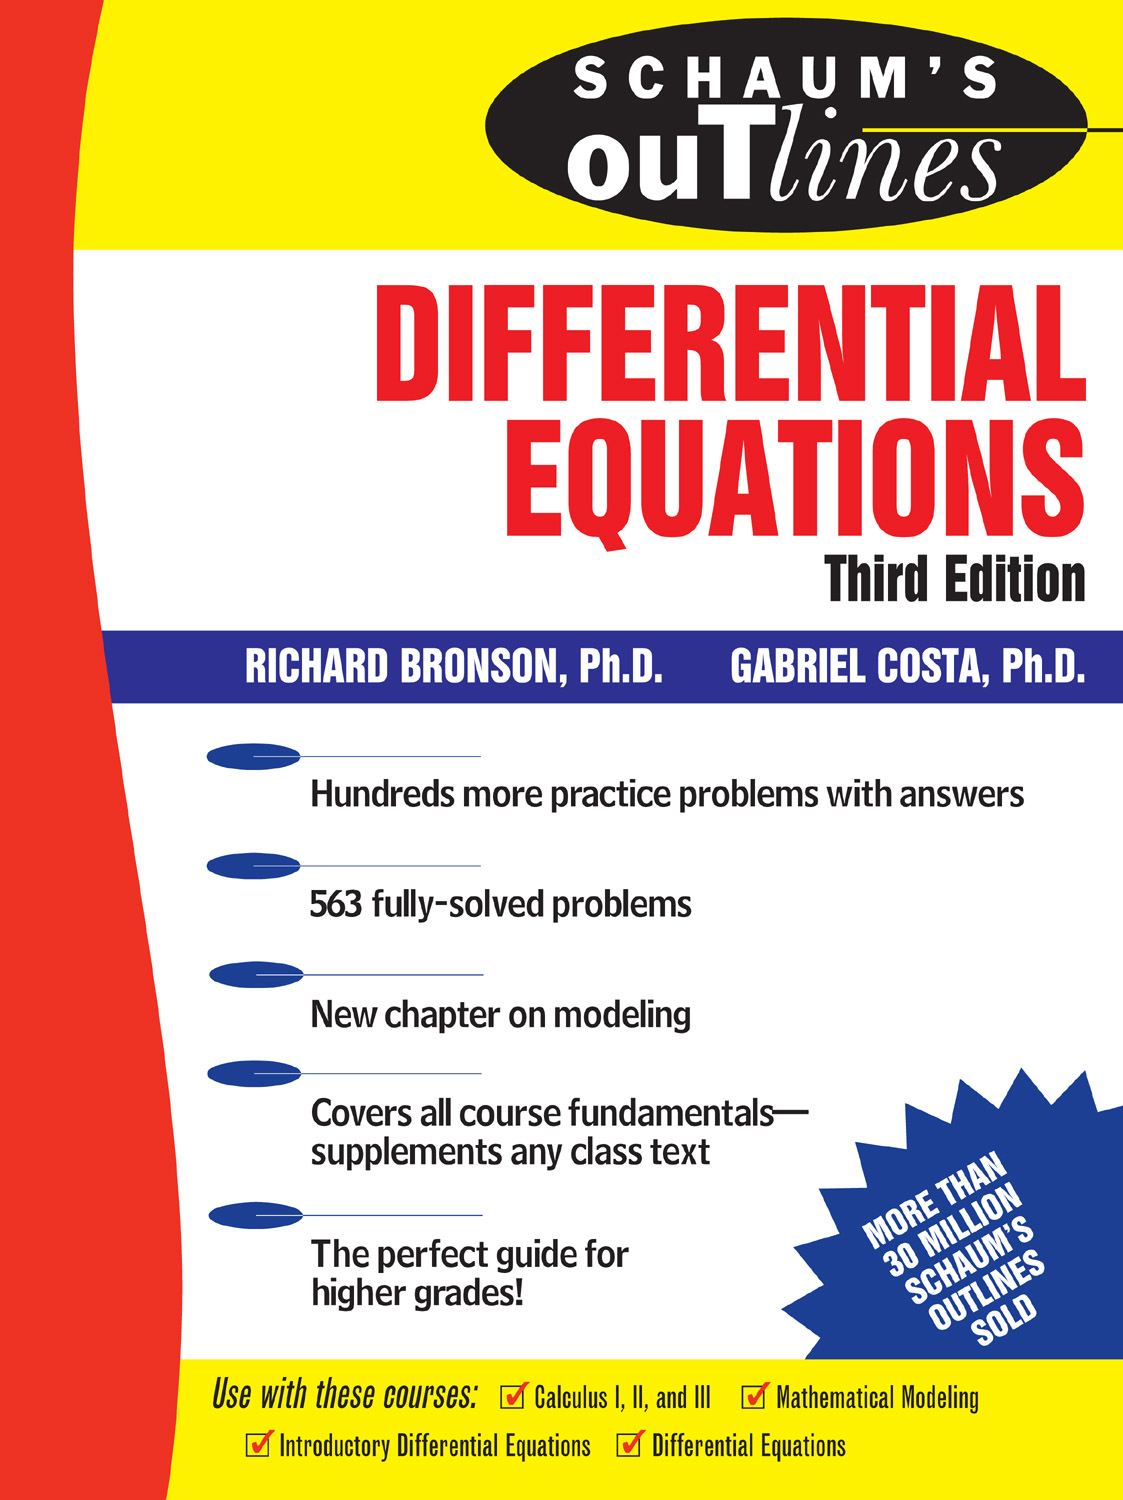 Schaum's Outline of Differential Equations 3rd edition